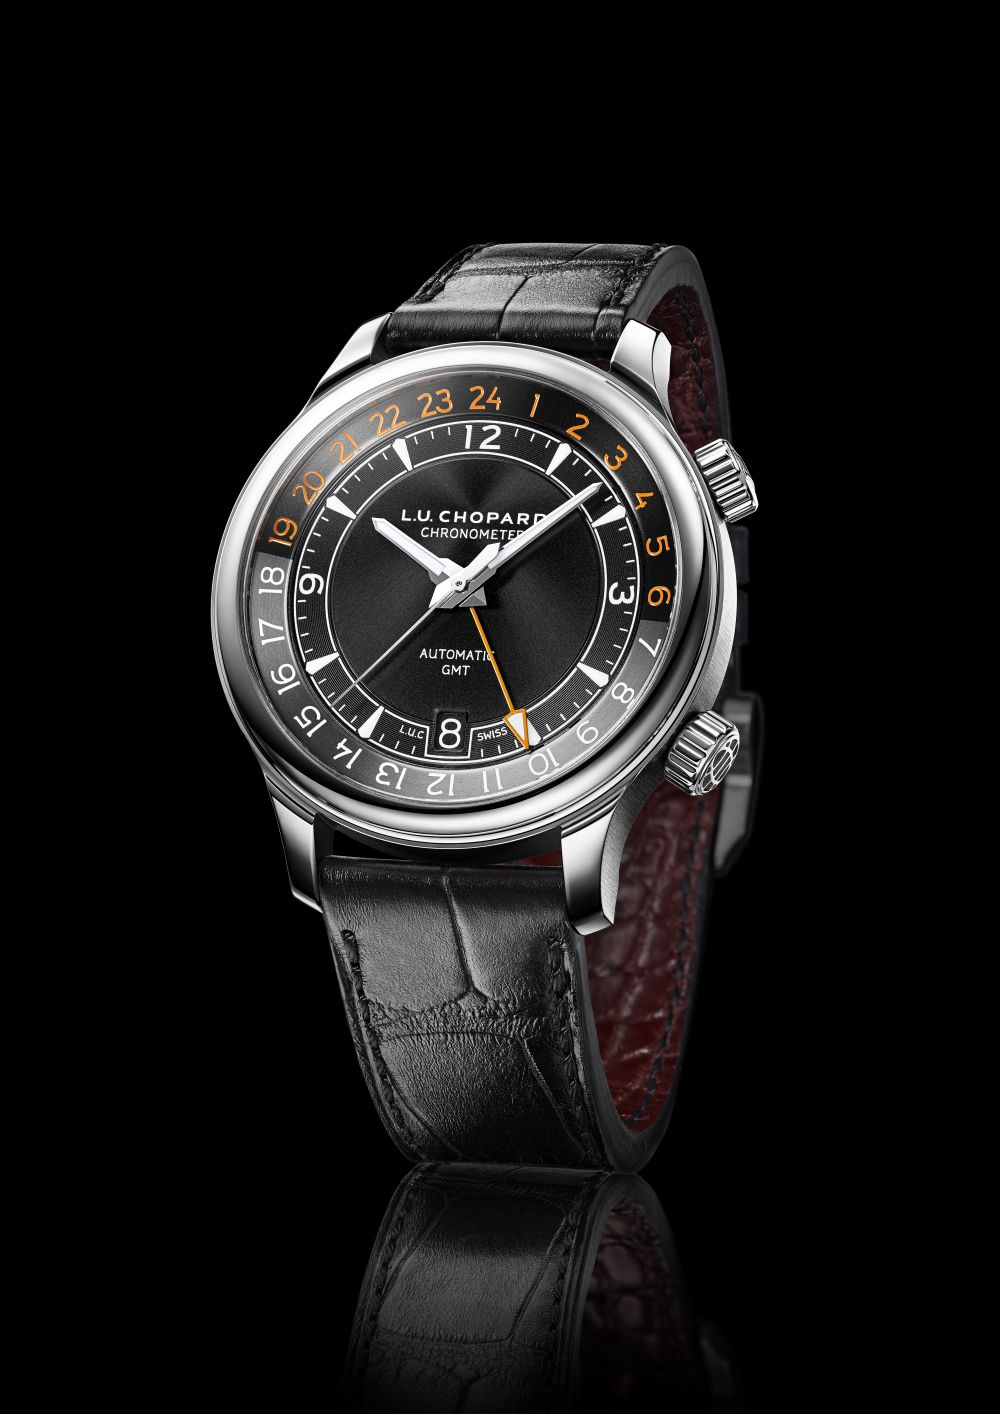 L-U-Chopard-GMT-One-9.jpg